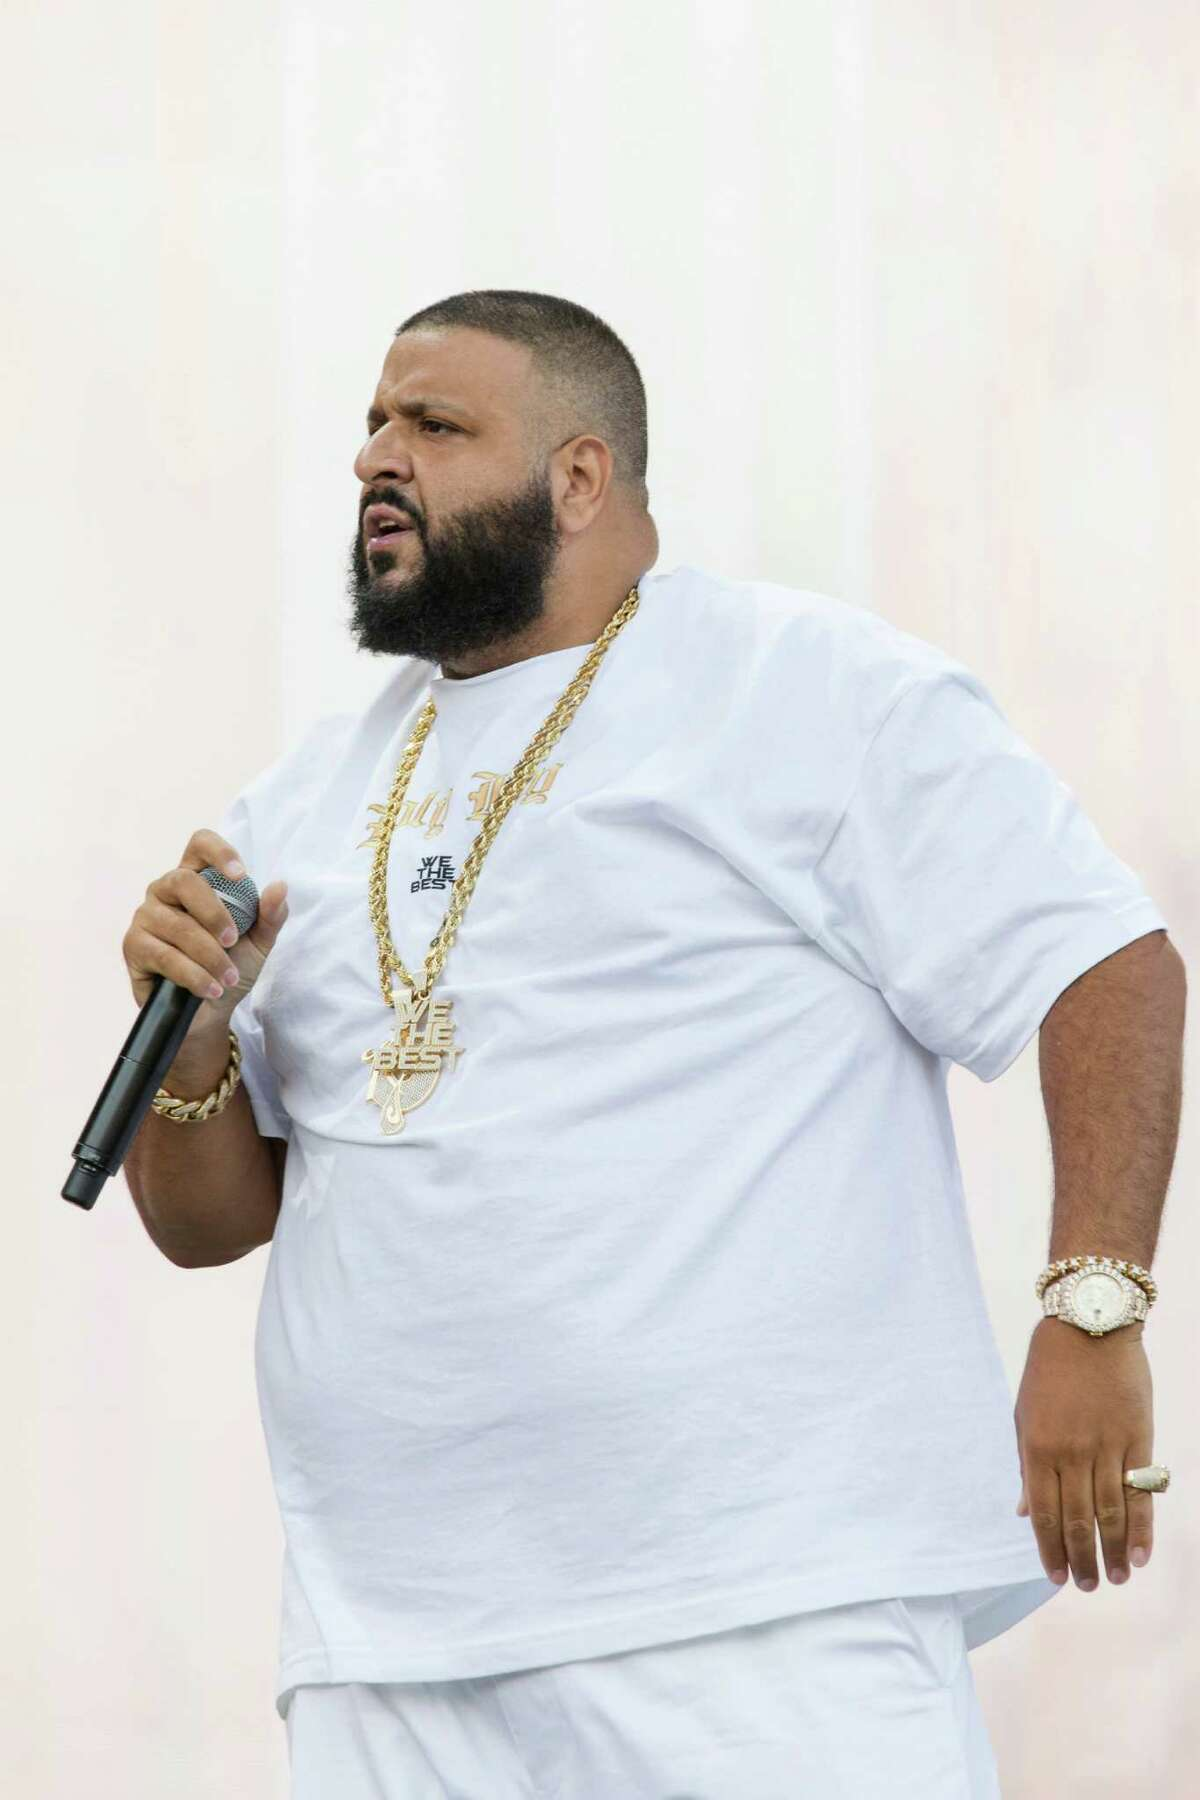 DJ Khaled performs at The Budweiser Made In America Festival on Sunday, Sept. 4, 2016, in Philadelphia. (Photo by Michael Zorn/Invision/AP)